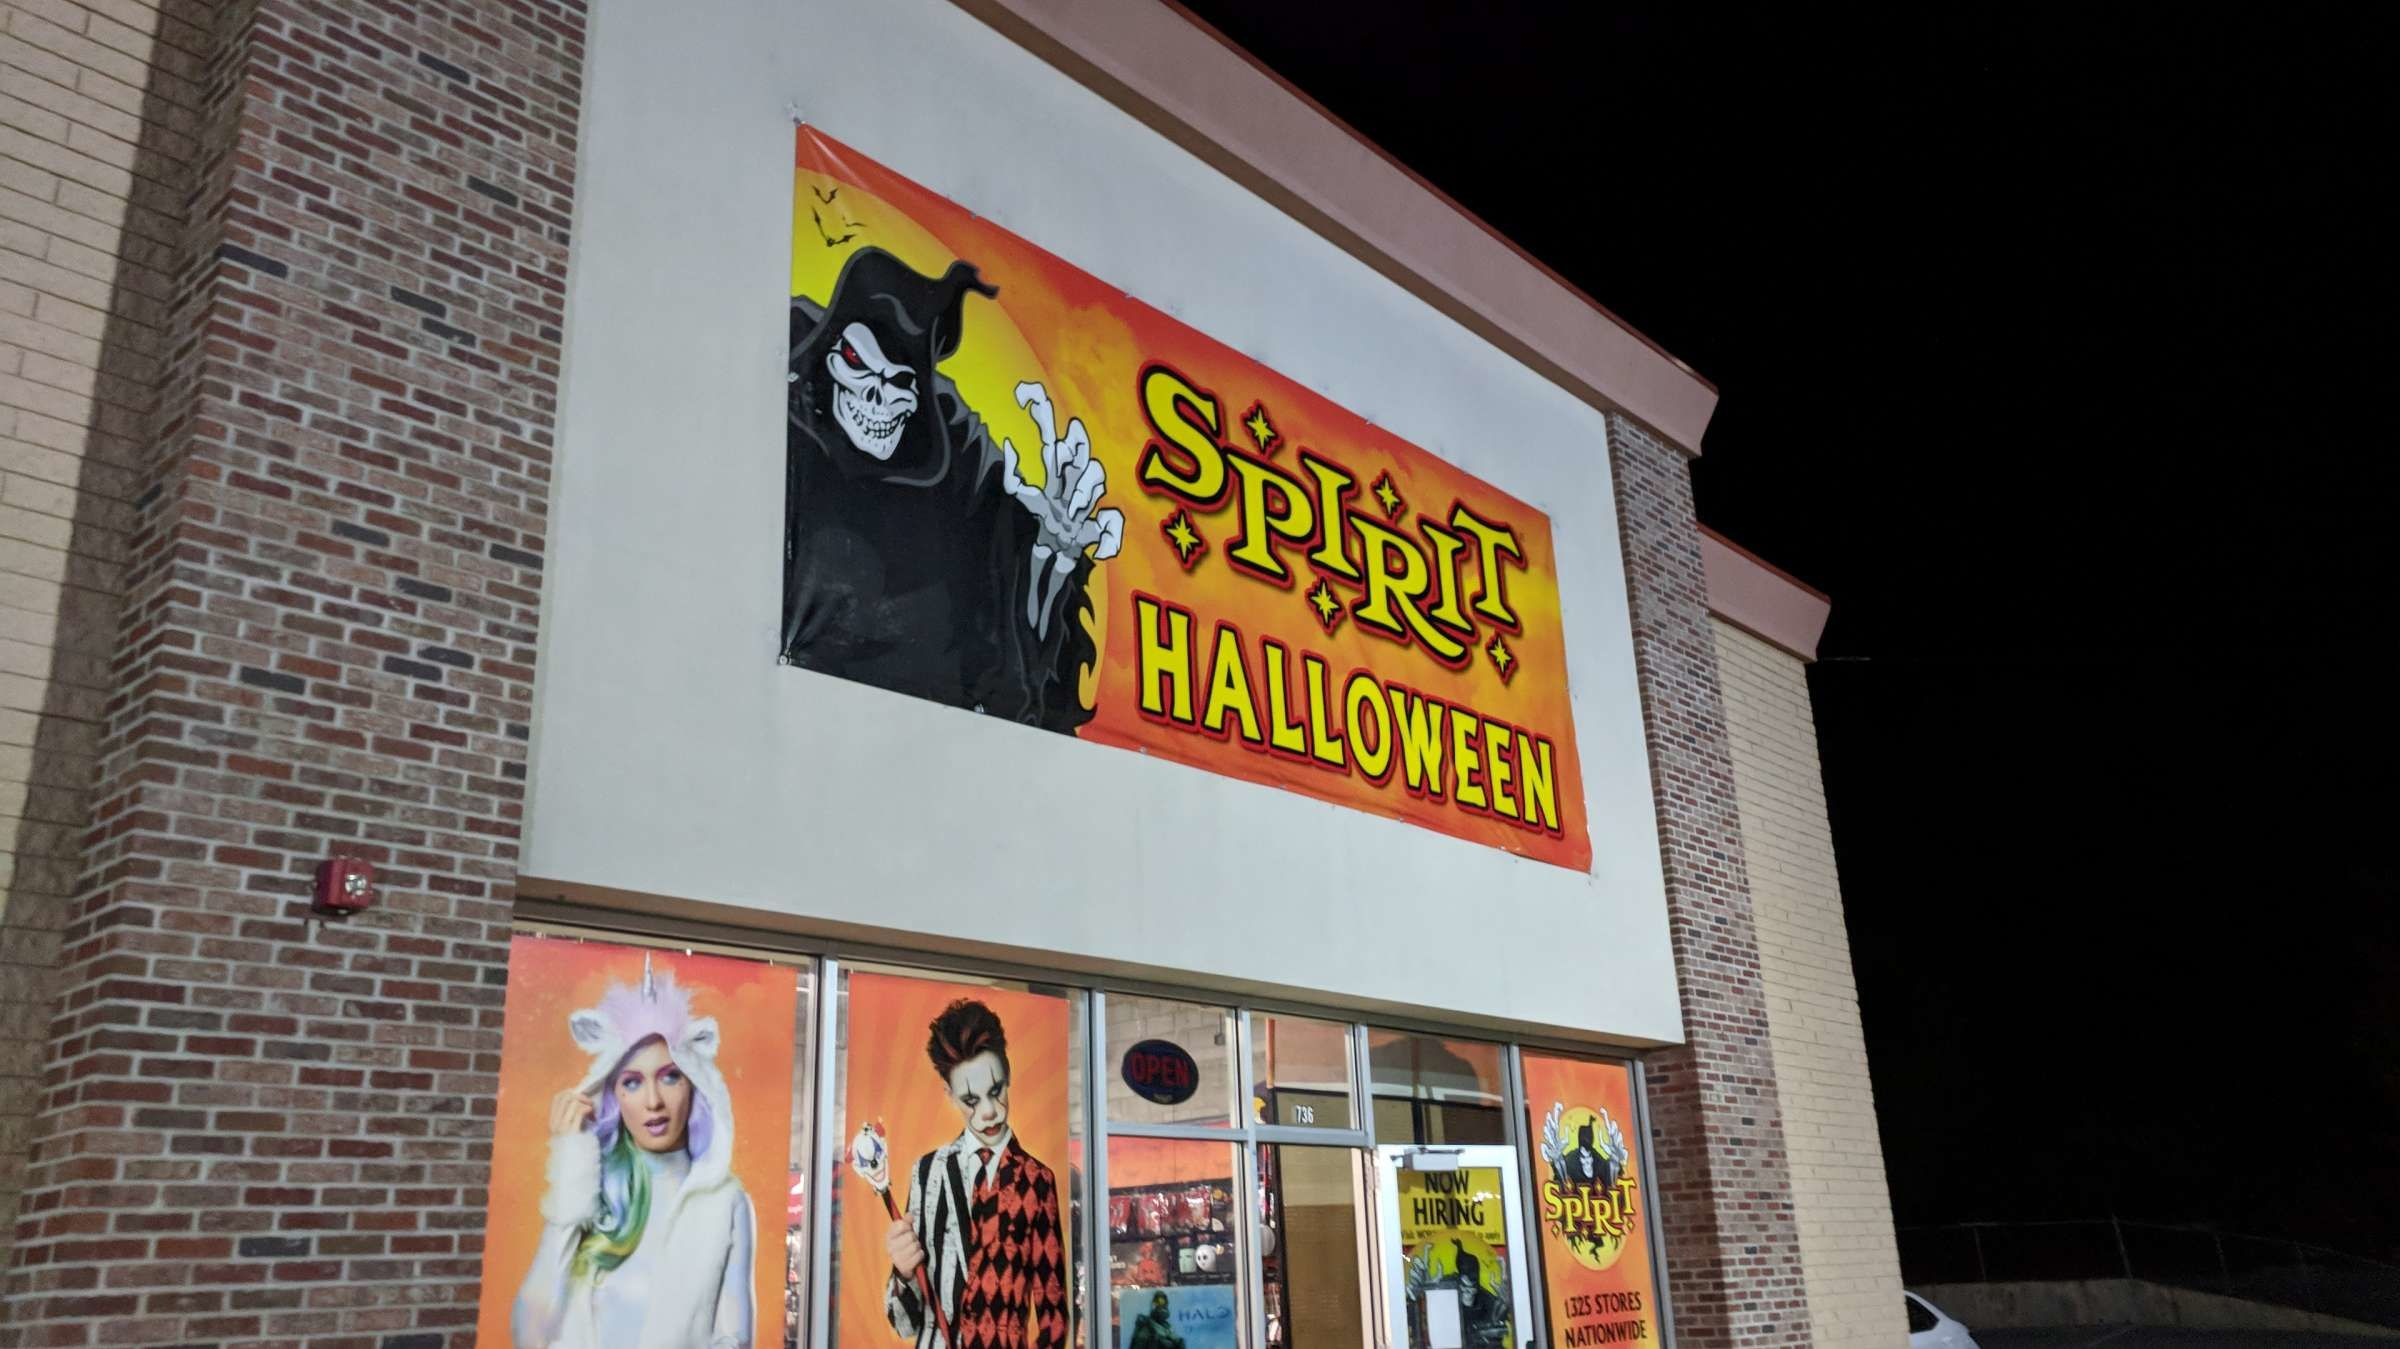 8 Spooky Facts About Spirit Halloween